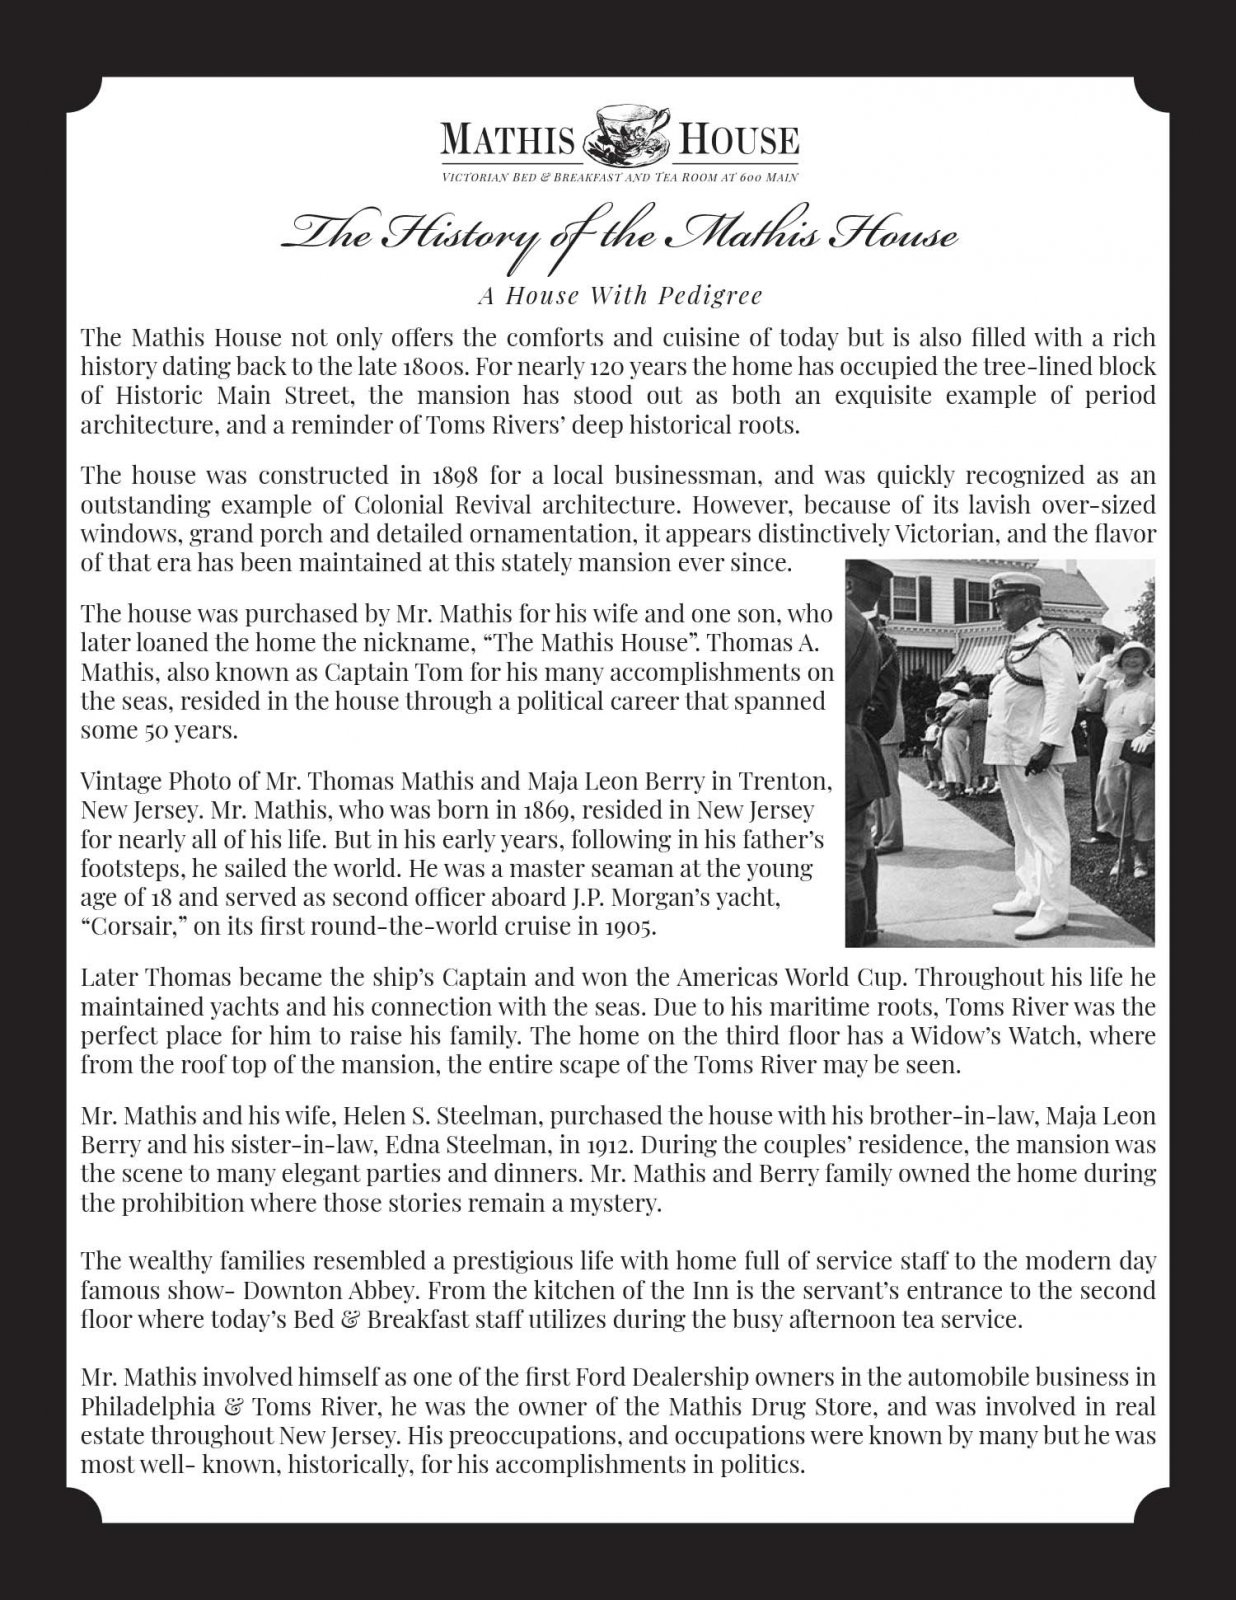 The History of the Mathis House, A House With Pedigree